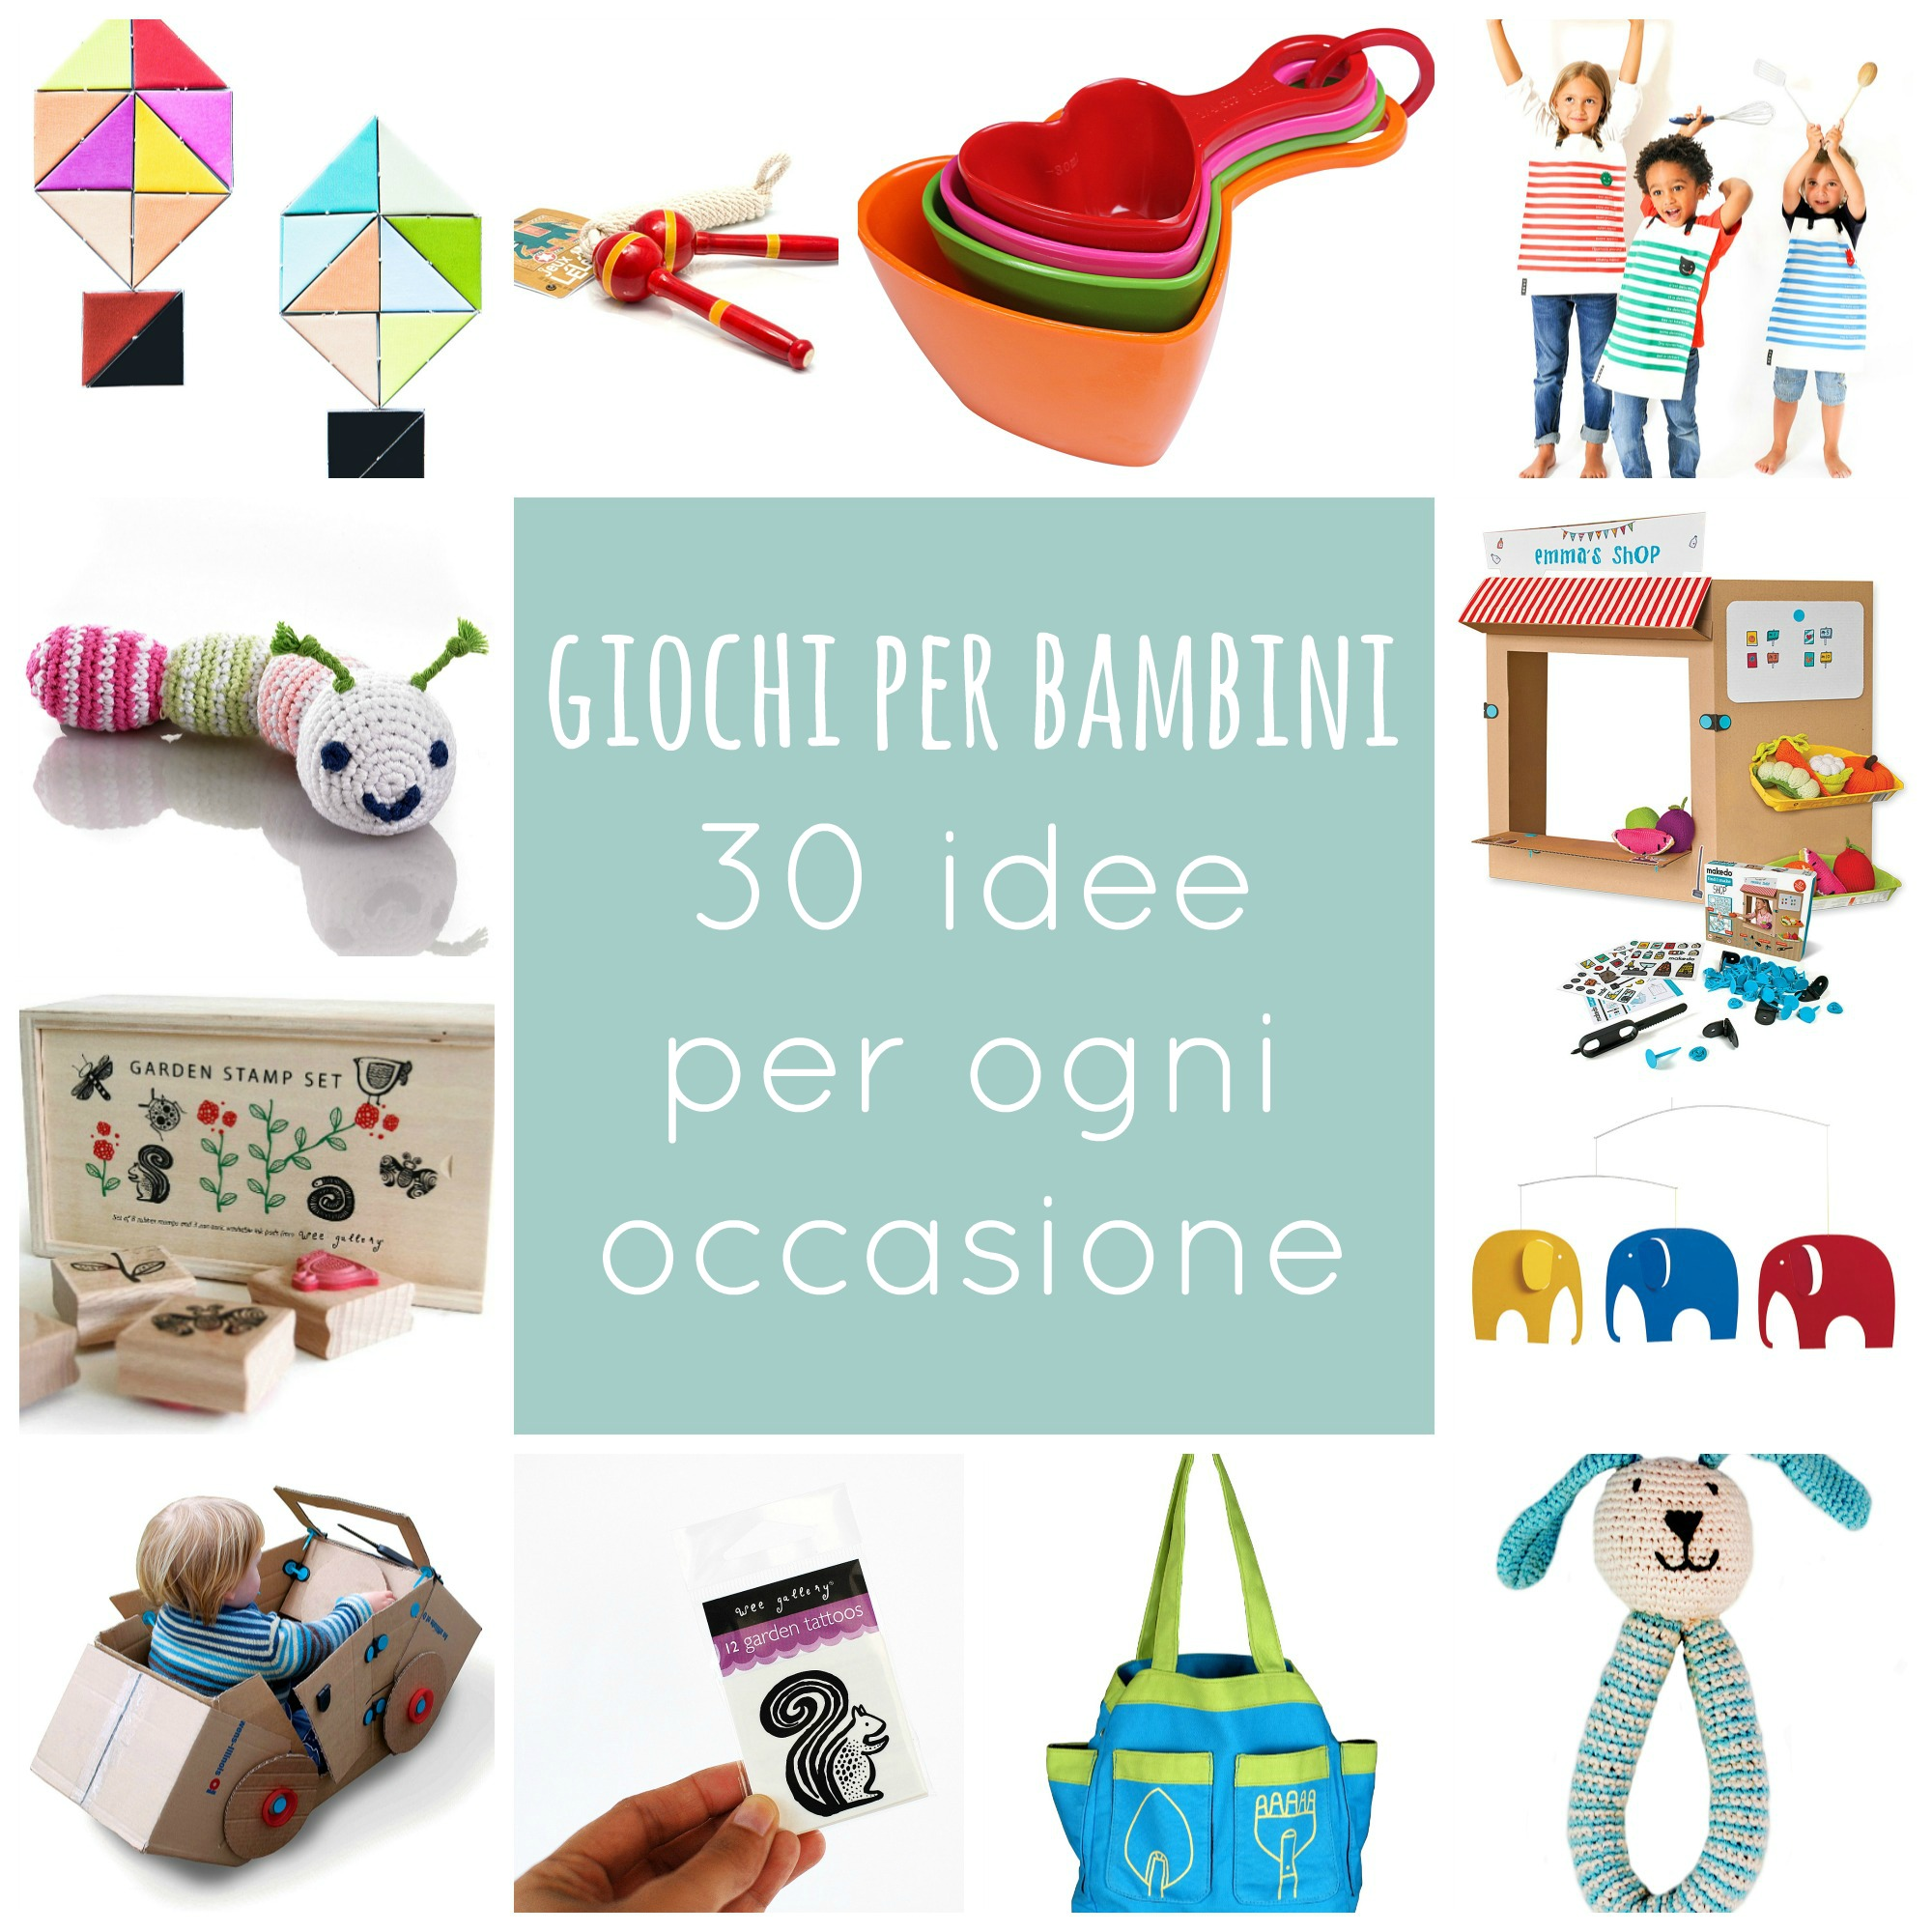 giochi per bambini 30 idee per ogni occasione babygreen. Black Bedroom Furniture Sets. Home Design Ideas